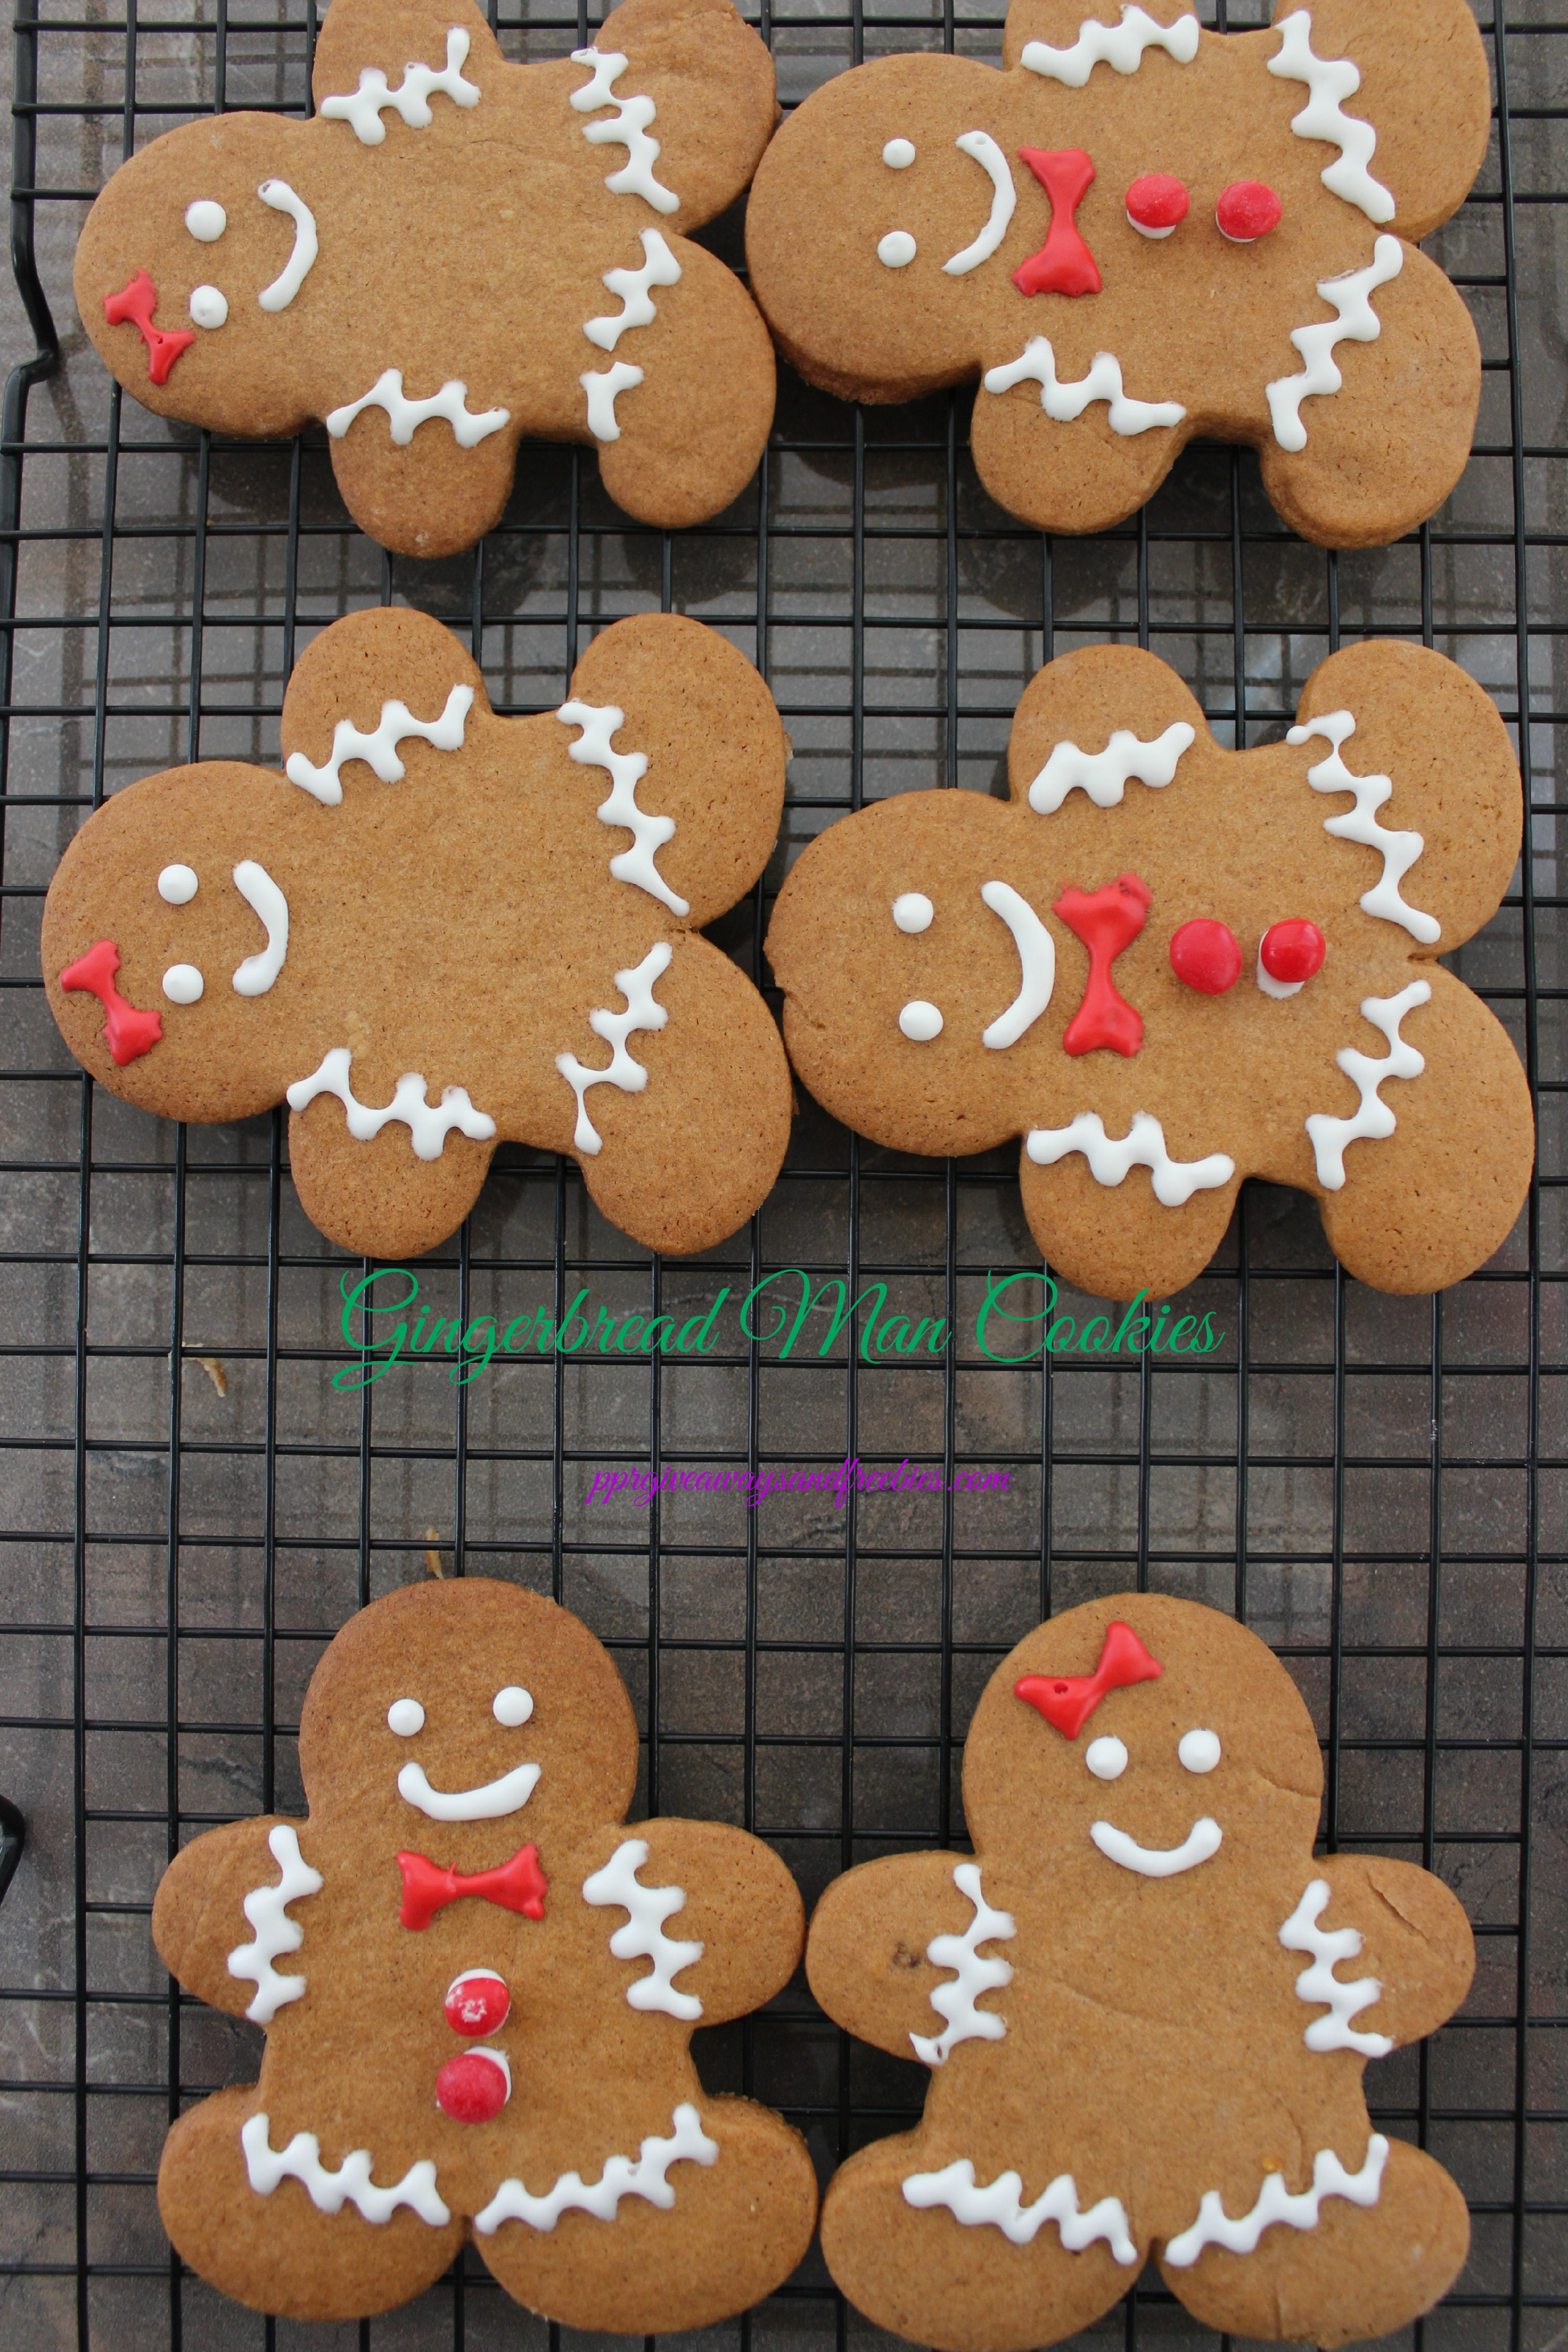 Gingerbread Man Cookies: 10 Christmas Cookies Recipes For The Holidays | Cheap Is The New Classy